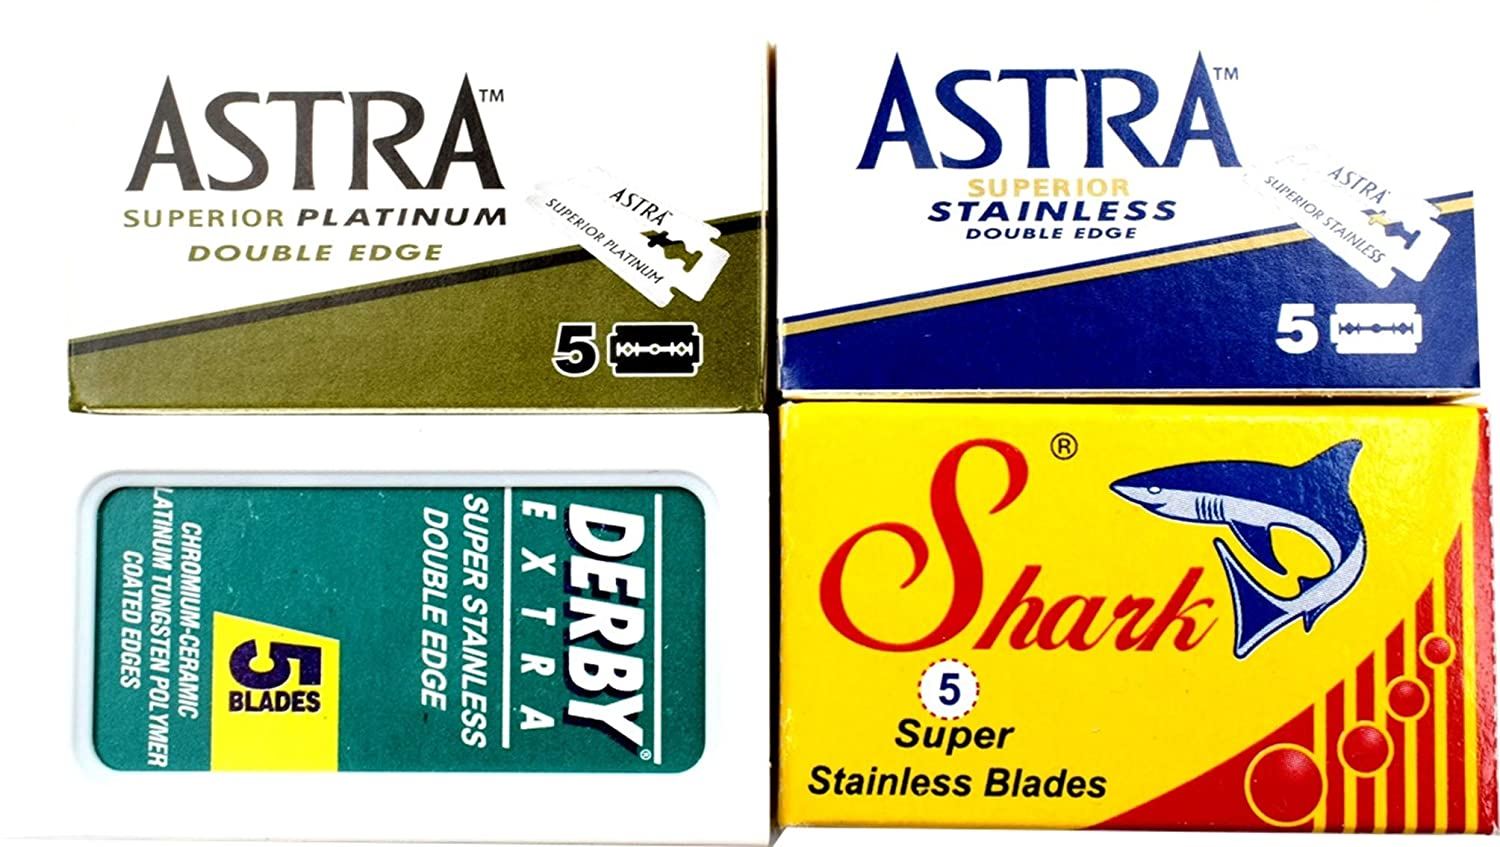 Astra-Derby-Shark Double Edge Razor Blades Sampler, 20 Blades